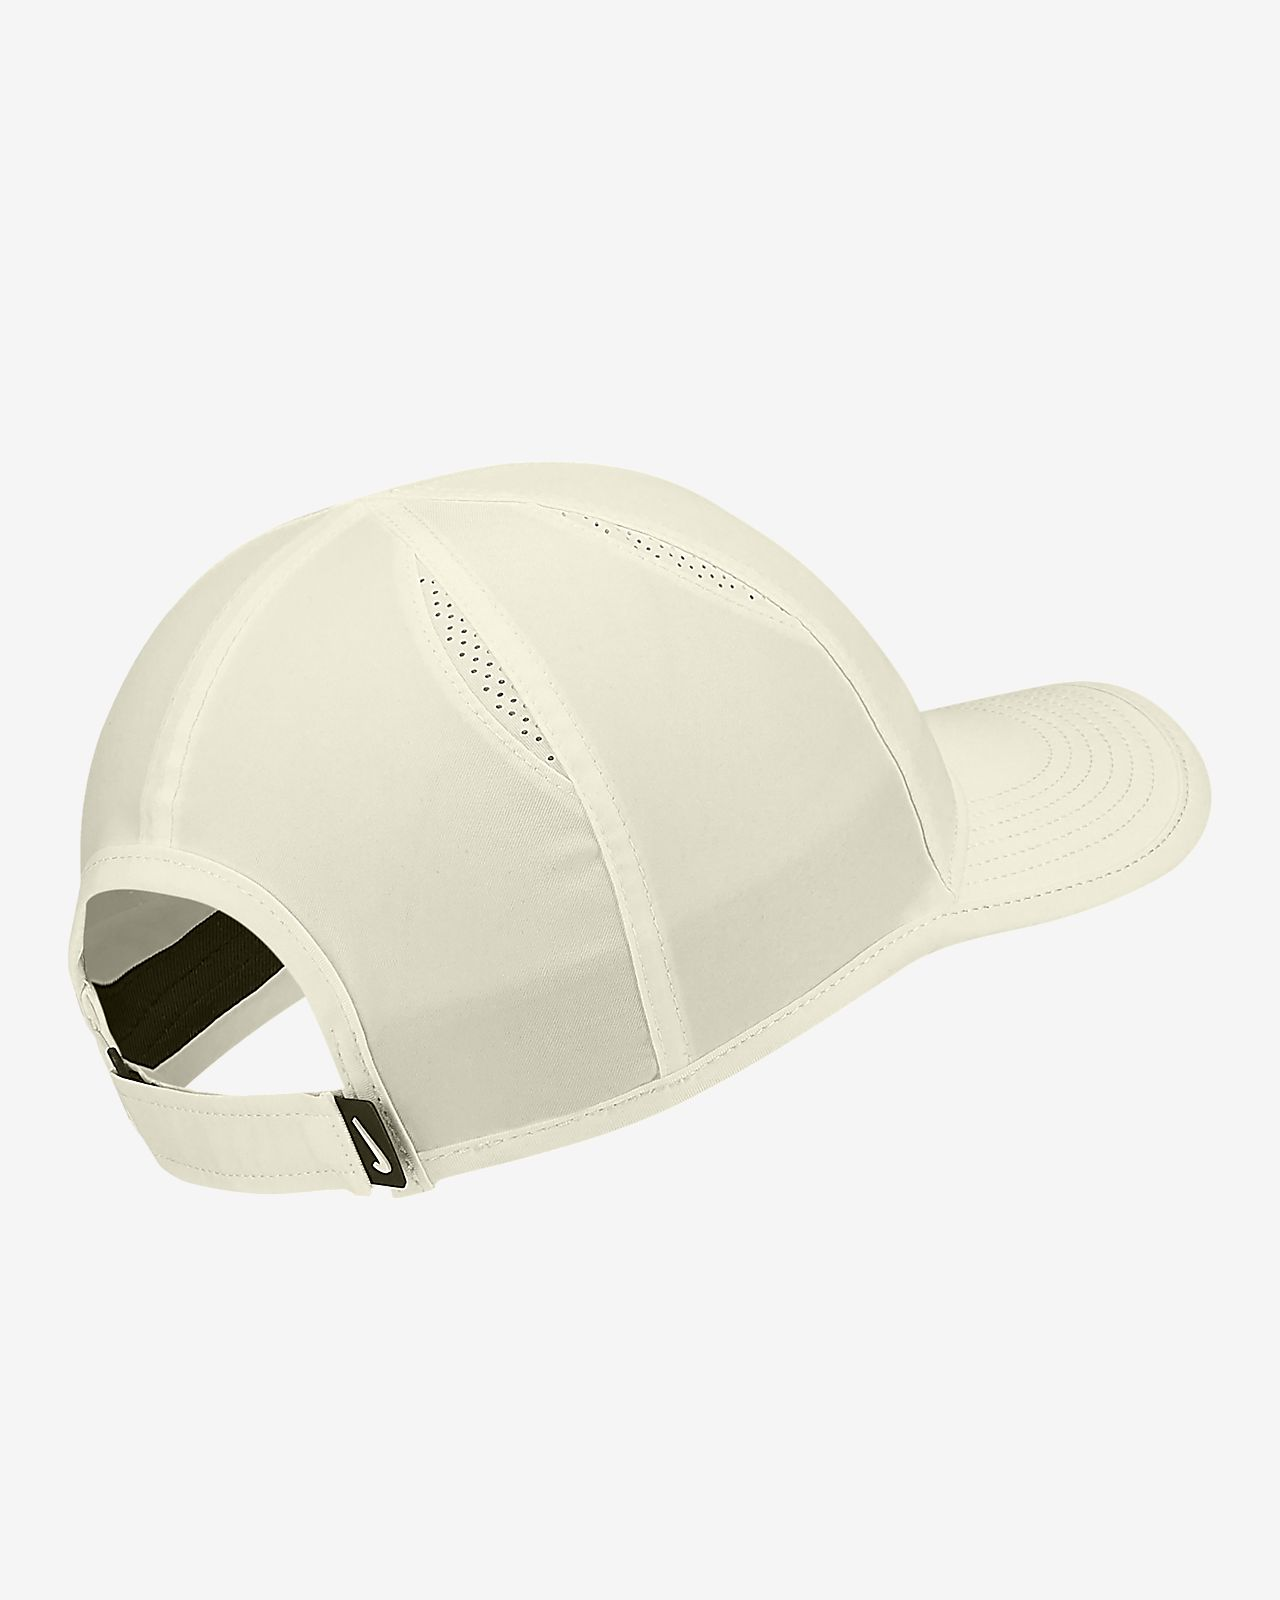 uk availability 28972 8f59a ... NikeCourt AeroBill Featherlight Women s Tennis Cap